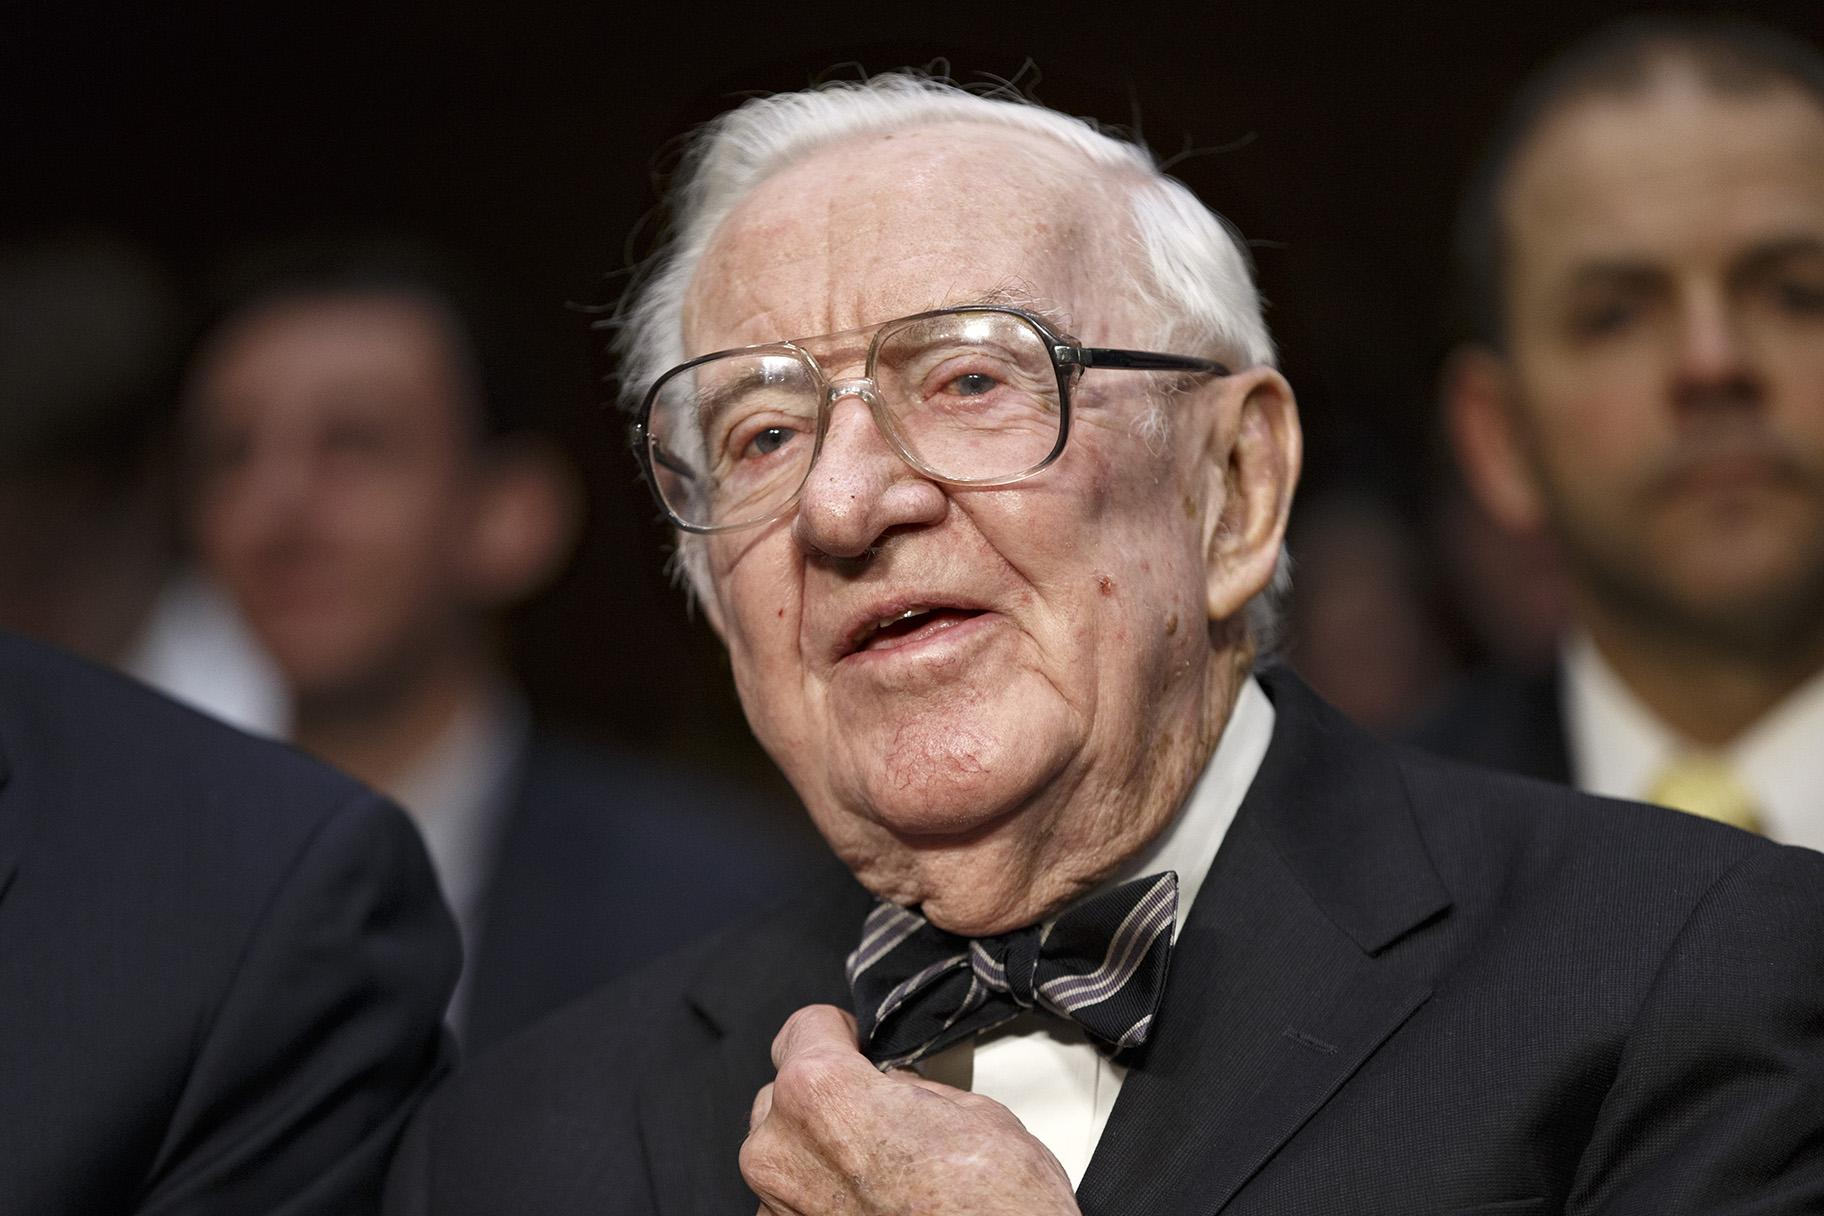 In this April 30, 2014 file photo, retired Supreme Court Justice John Paul Stevens prepares to testify on the ever-increasing amount of money spent on elections as he appears before the Senate Rules Committee on Capitol Hill in Washington. (AP Photo, File)